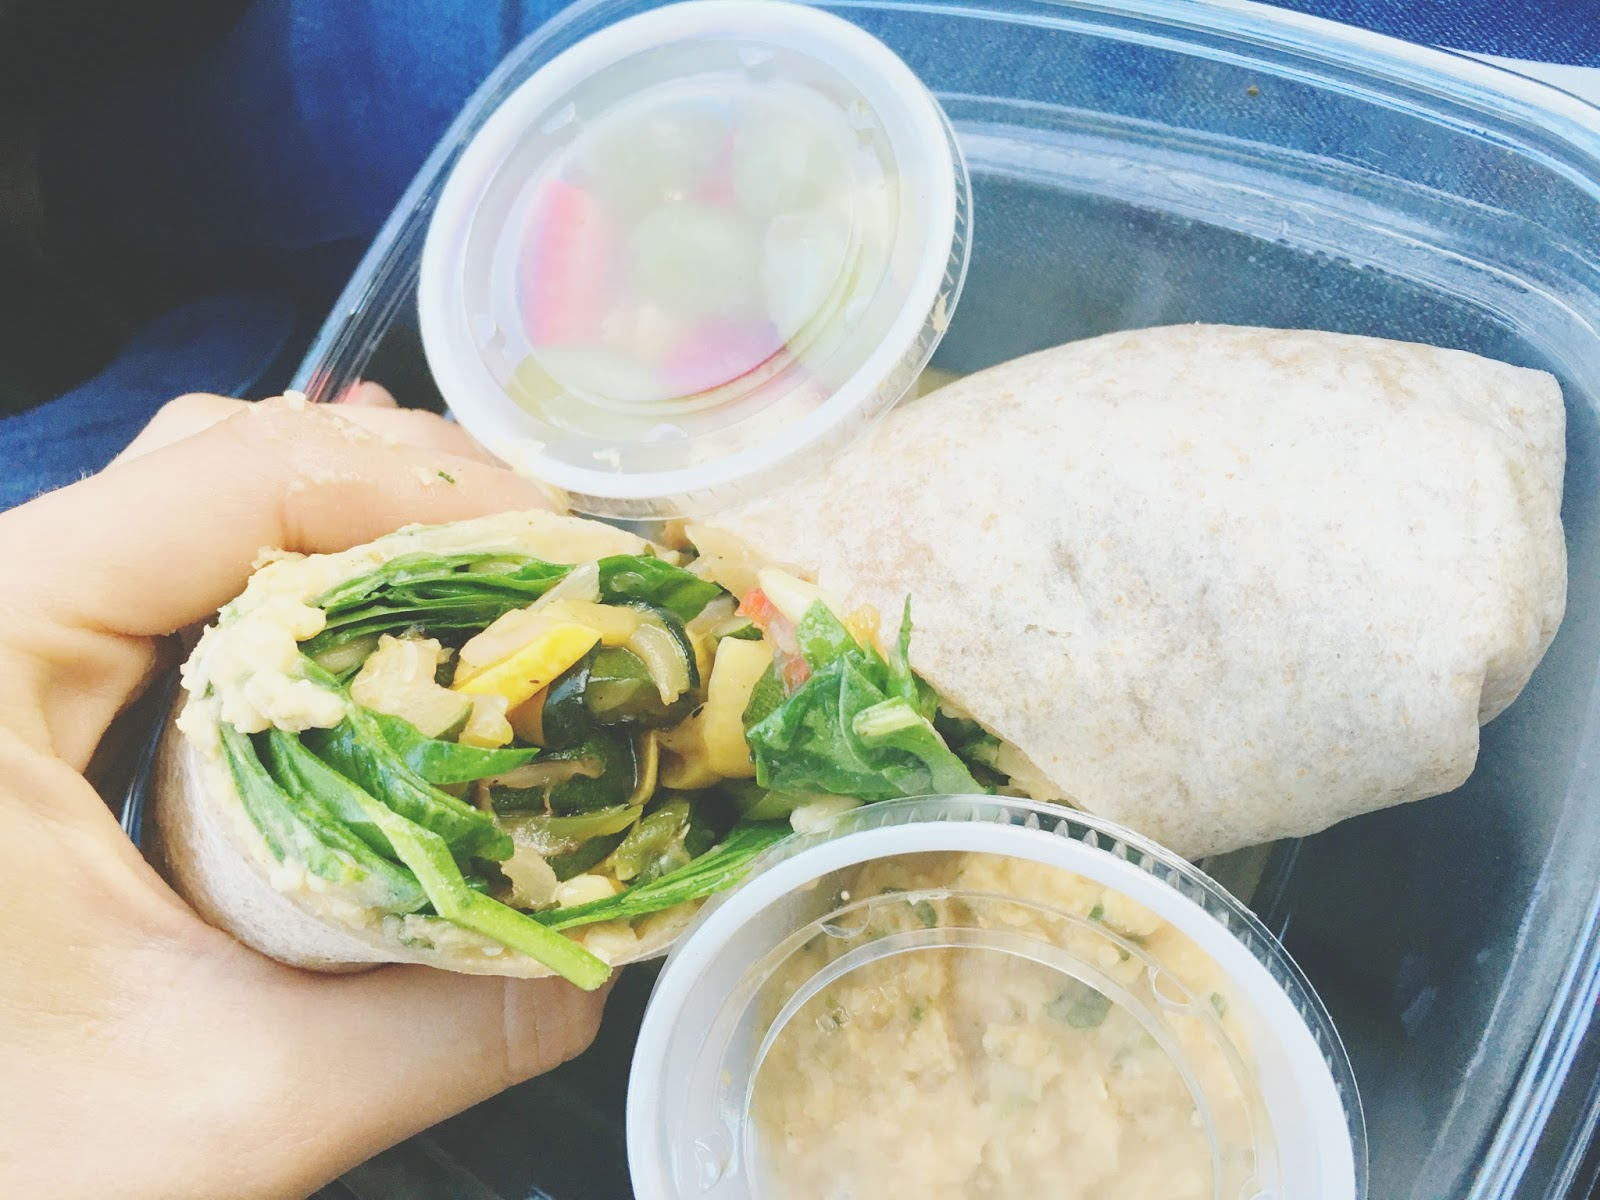 vegetable wrap at H.S. Green - A healthy restaurant in Houston, Texas